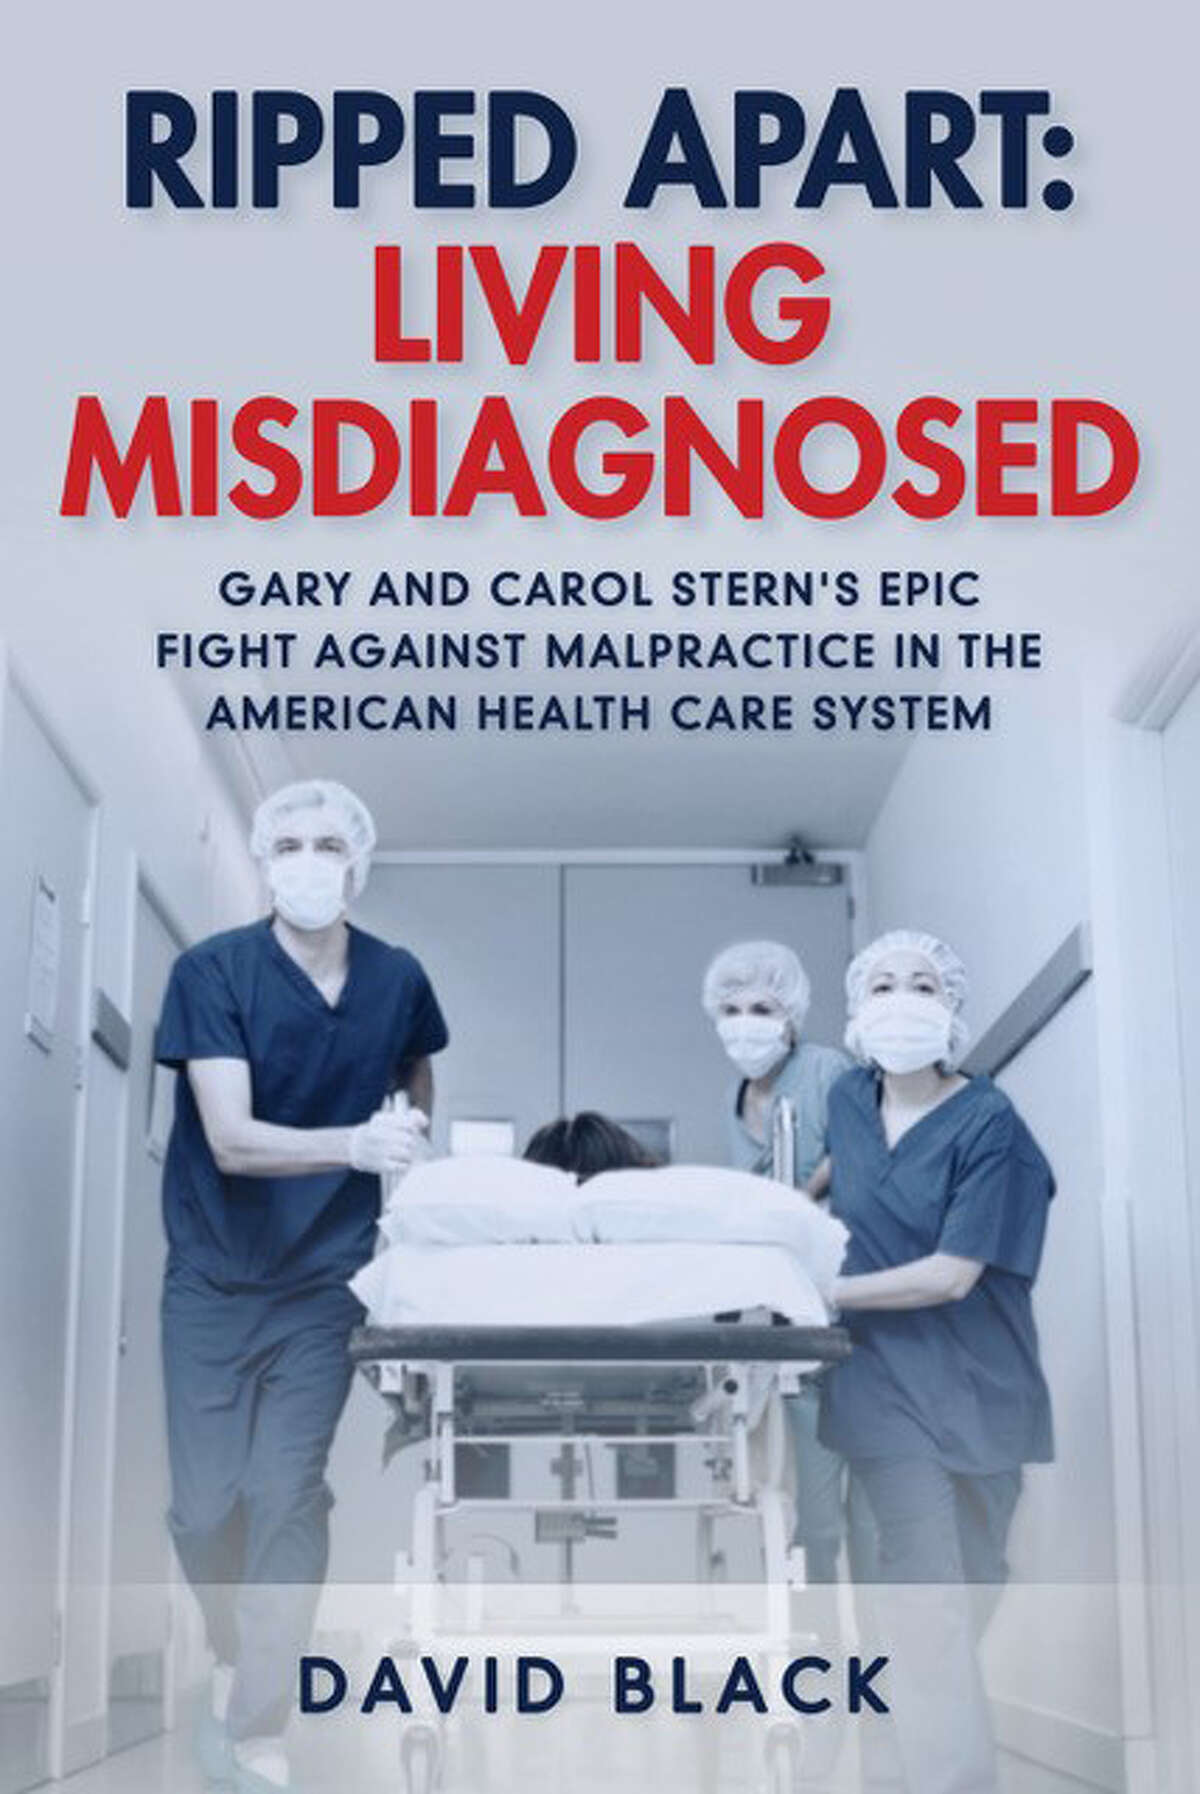 """Cover image for David Black's """"Ripped Apart: Living Misdiagnosed,"""" a harrowing true story of one couple's fight against malpractice in the American health care system."""